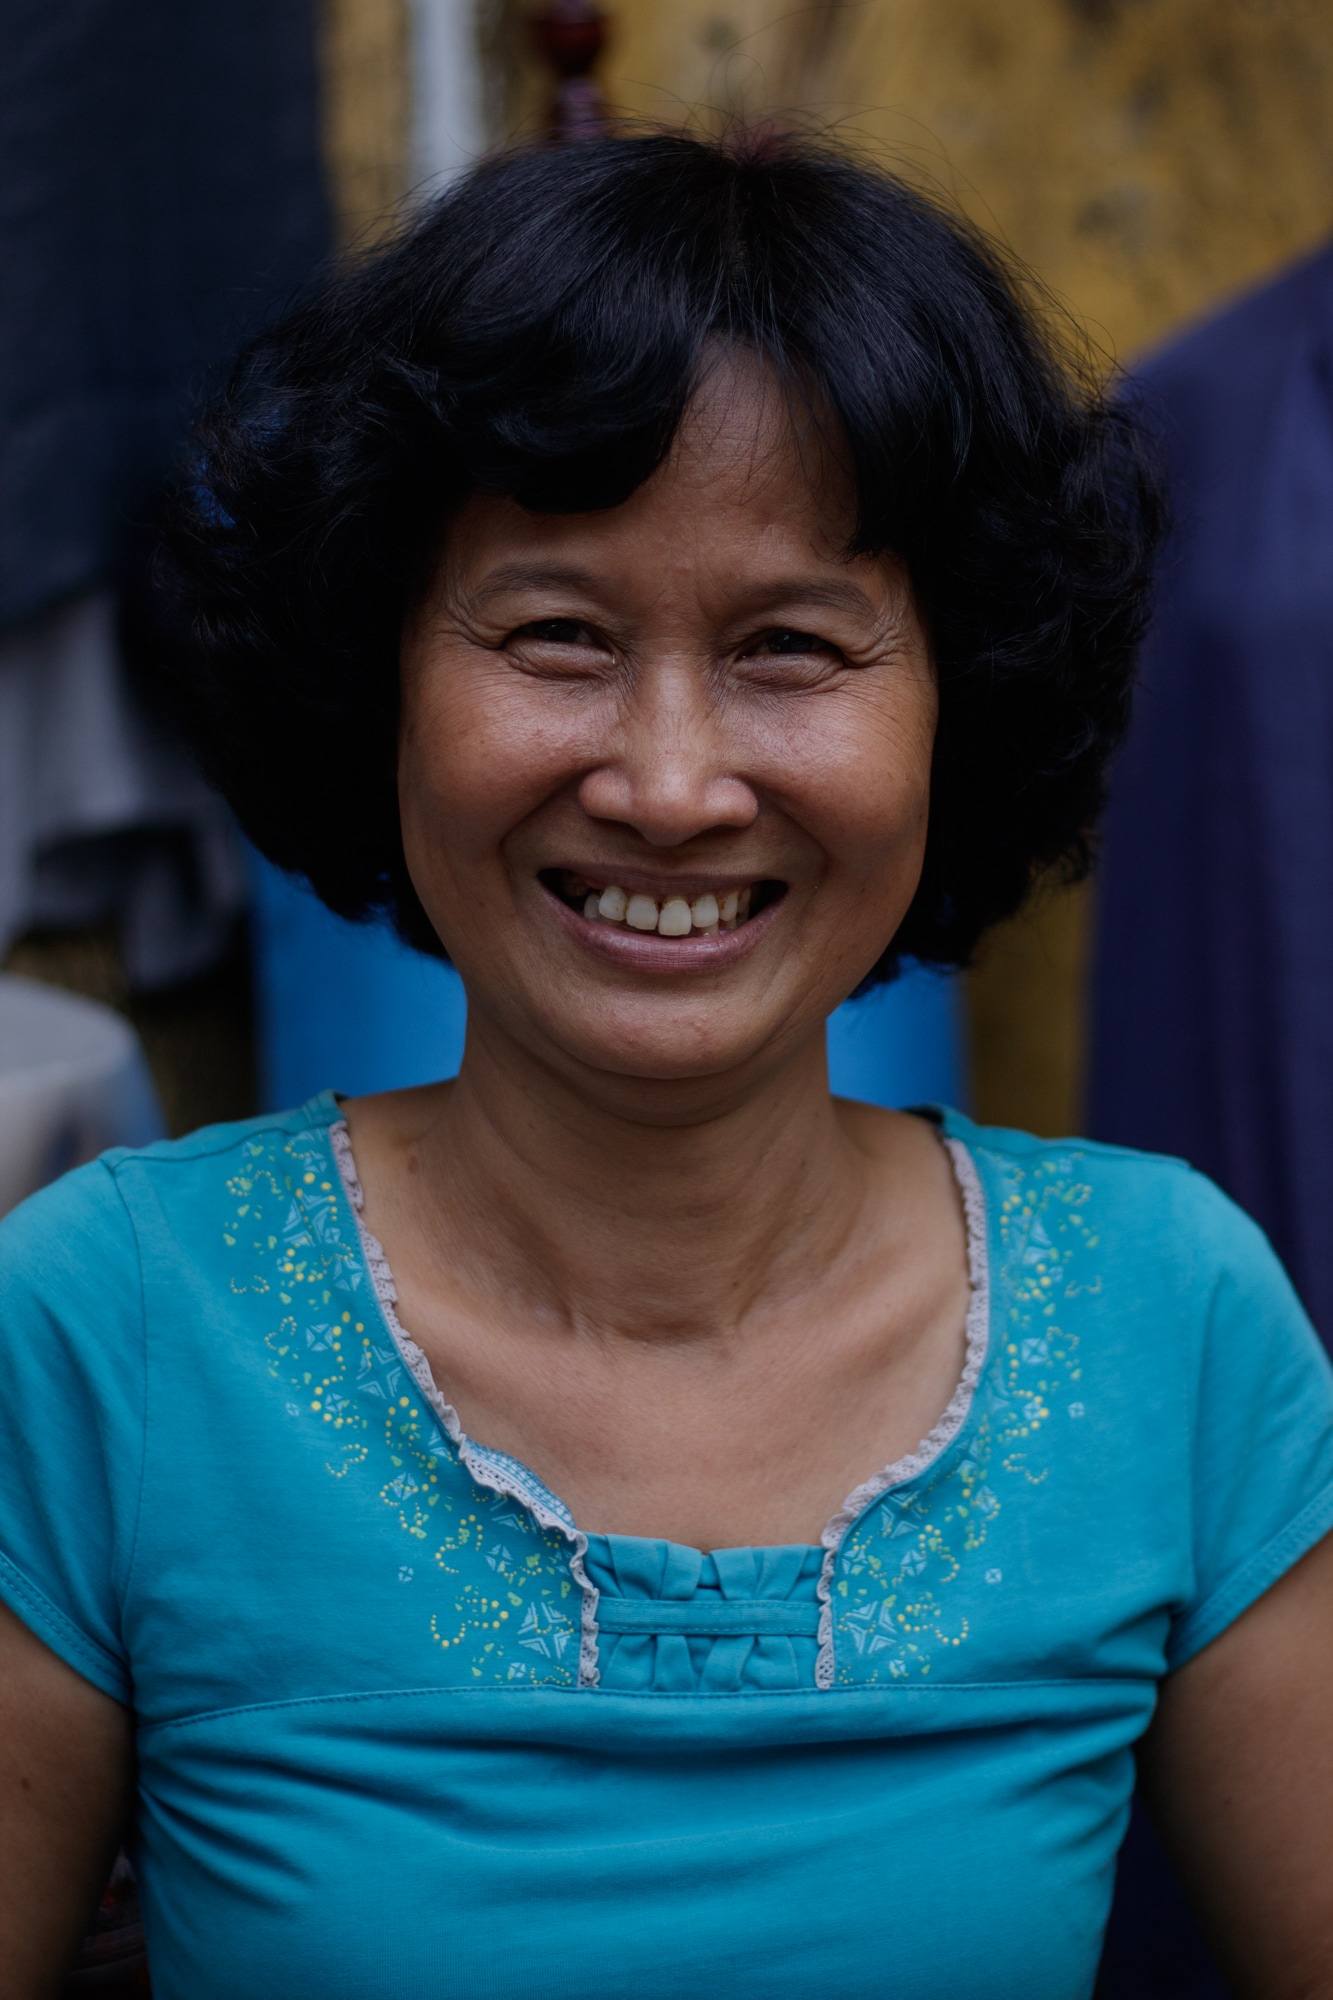 A diary vendor smiles at camera after a successful sale. Hoi An, Vietnam.